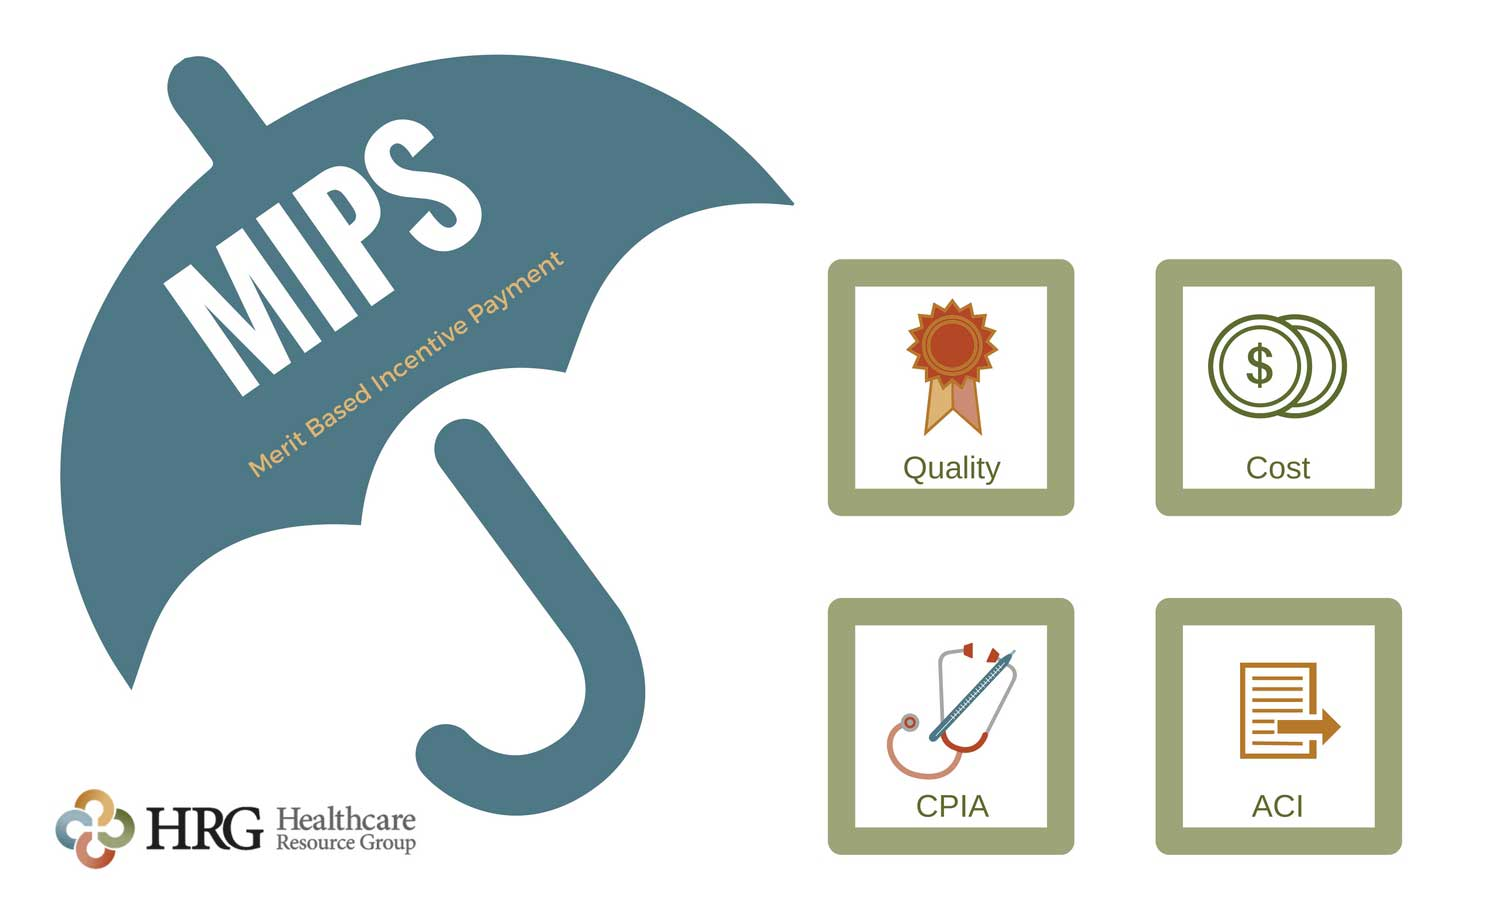 MACRA-MIPS-Quality-are-you-ready--HRG-Blog